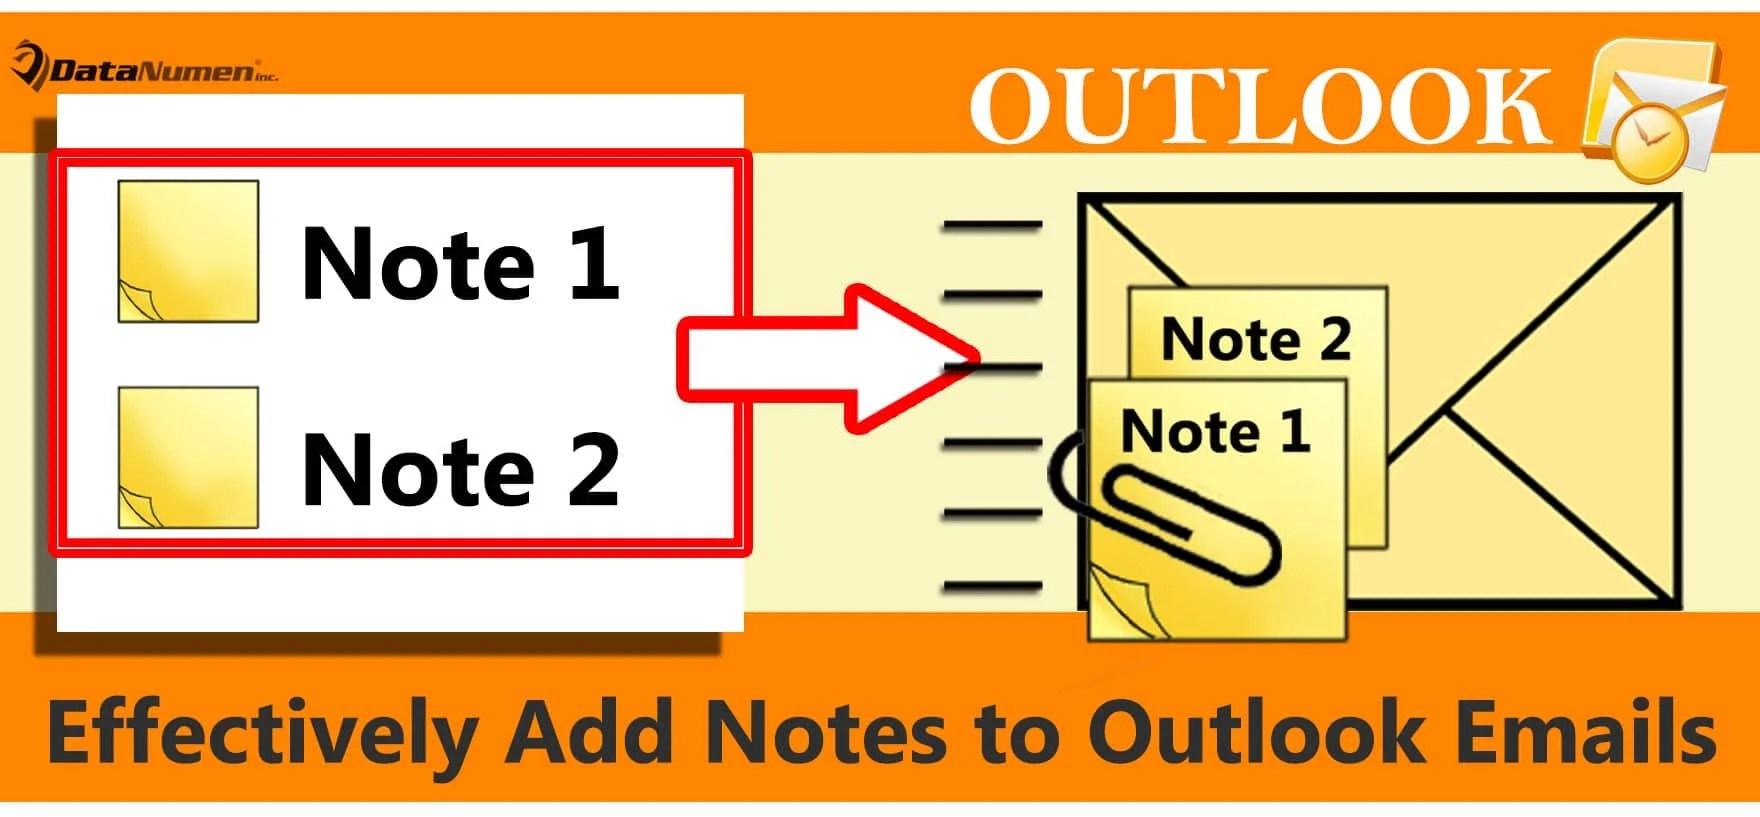 Effectively Add Notes to Outlook Emails via VBA & UserForm